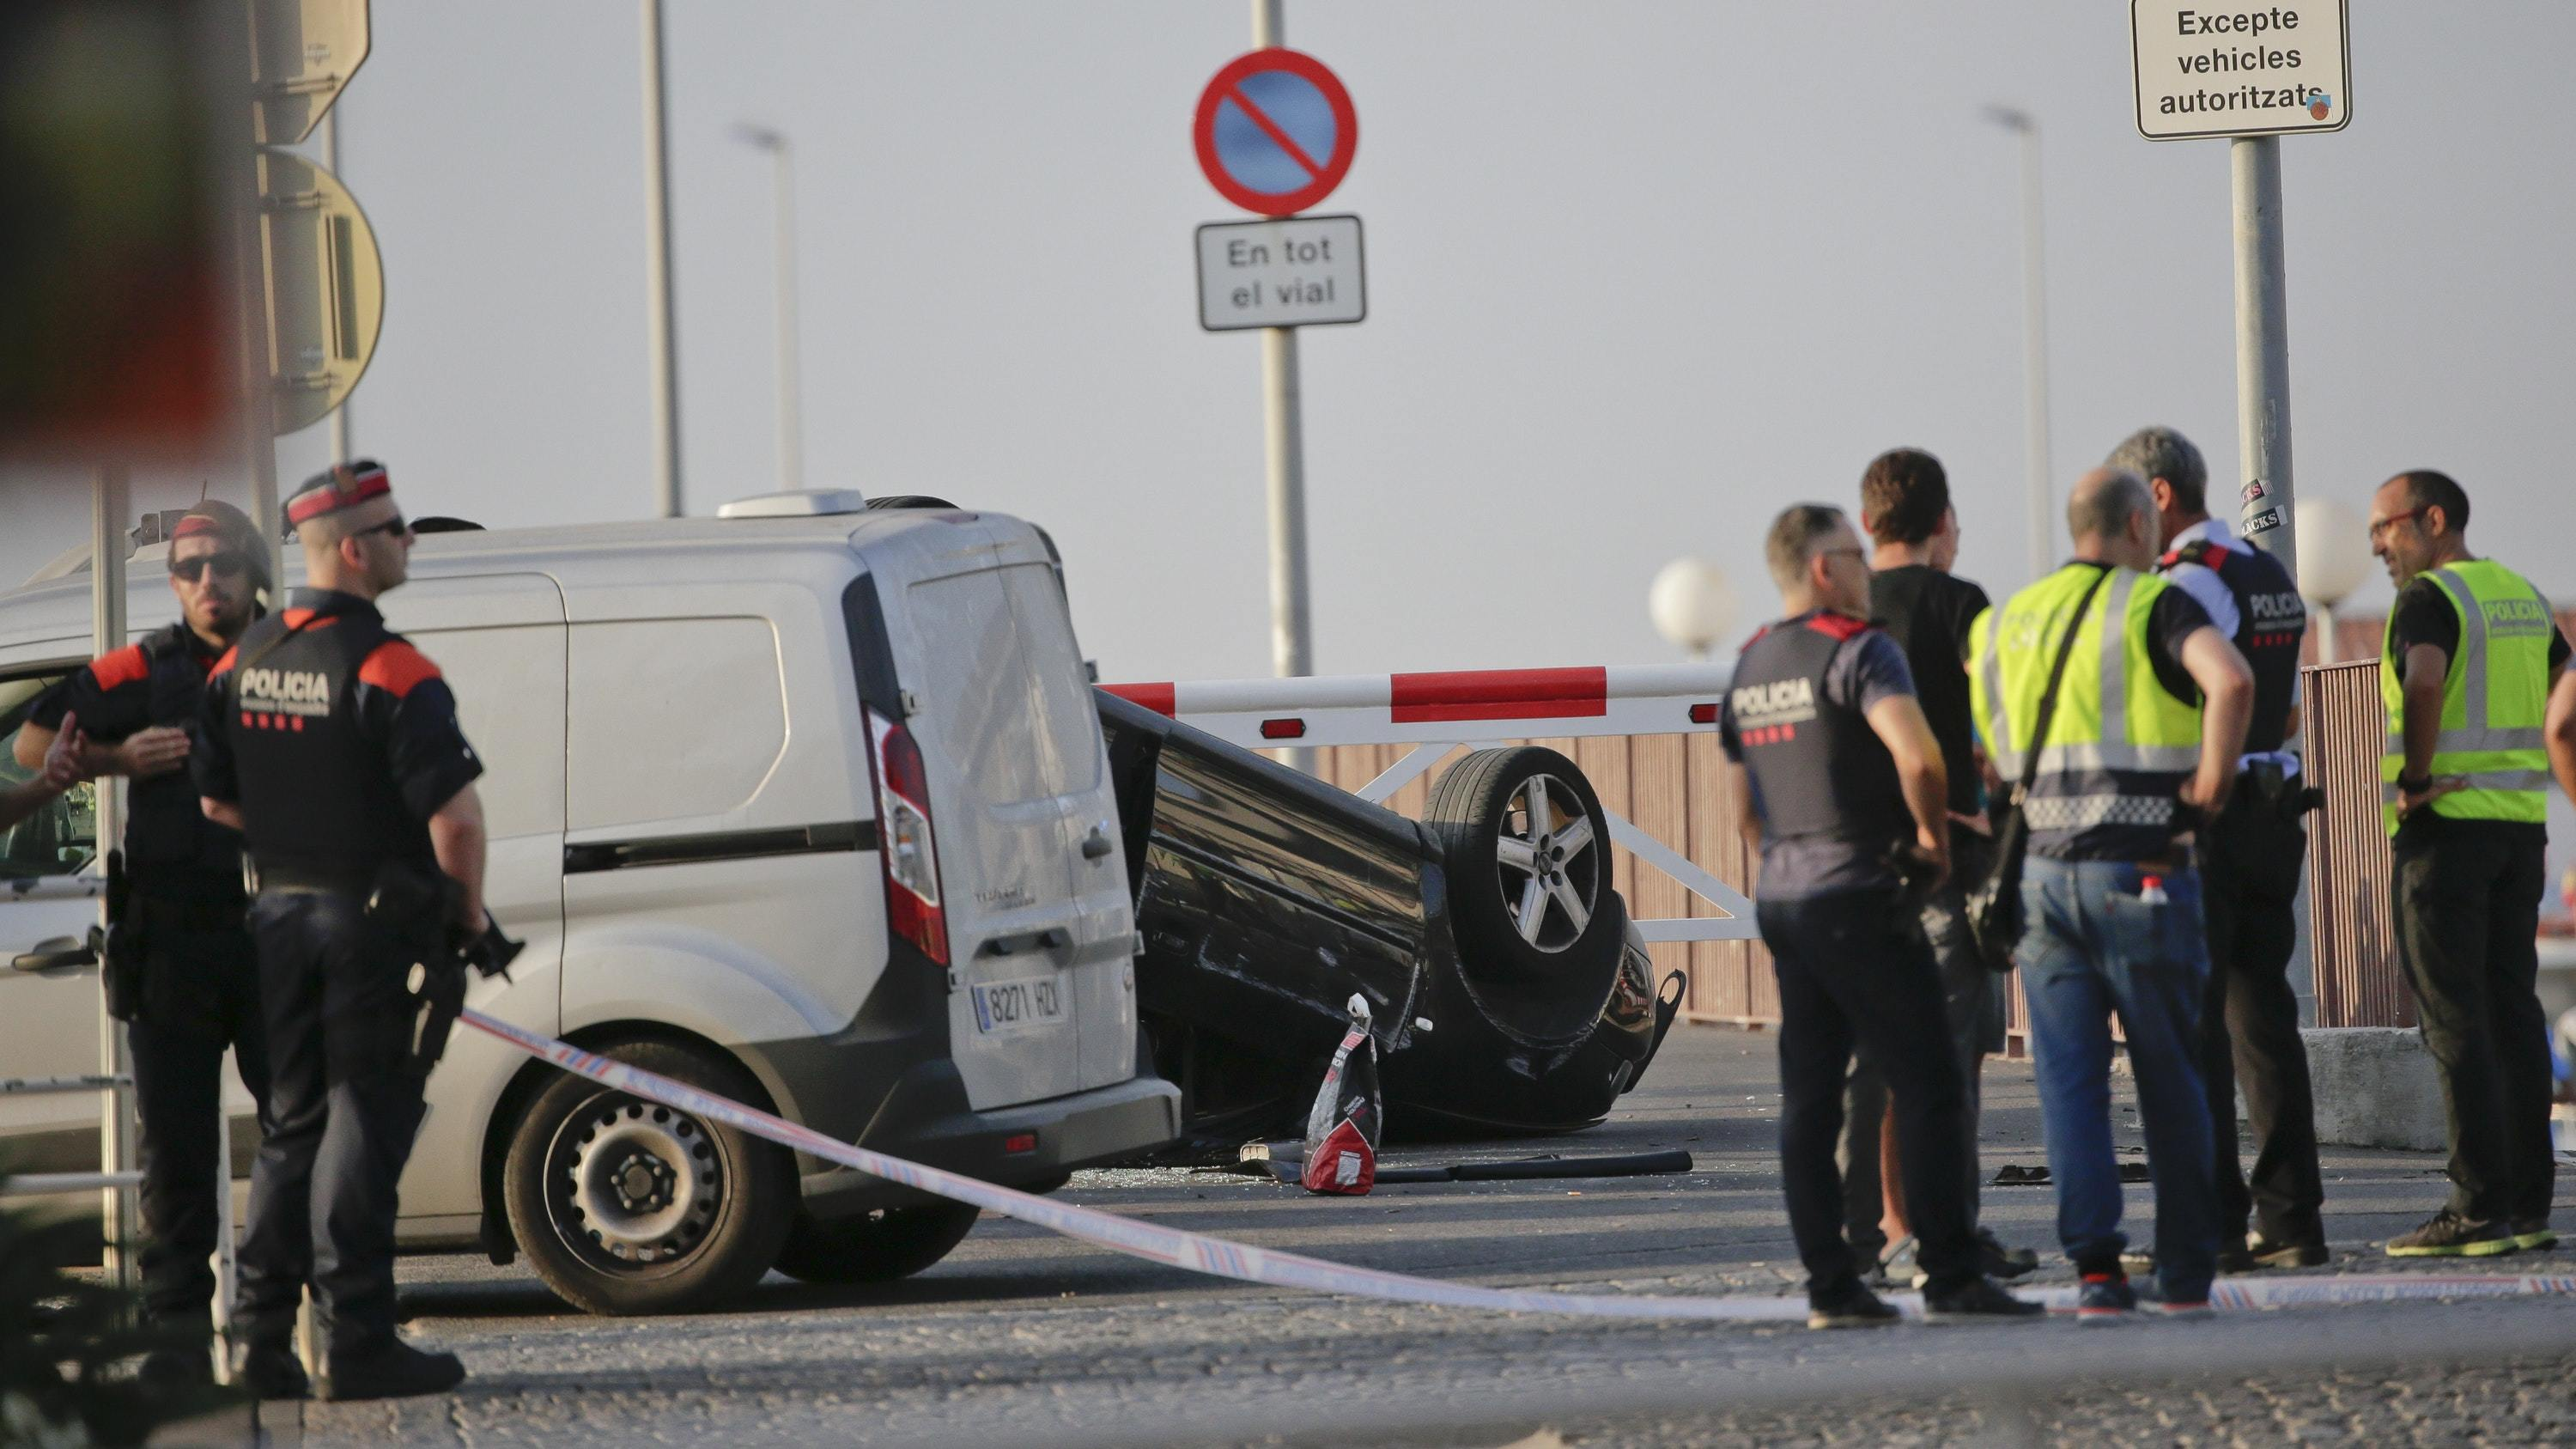 An overturned car at the spot where terrorists were intercepted by police in Cambrils, Spain (Emilio Morenatti/AP)